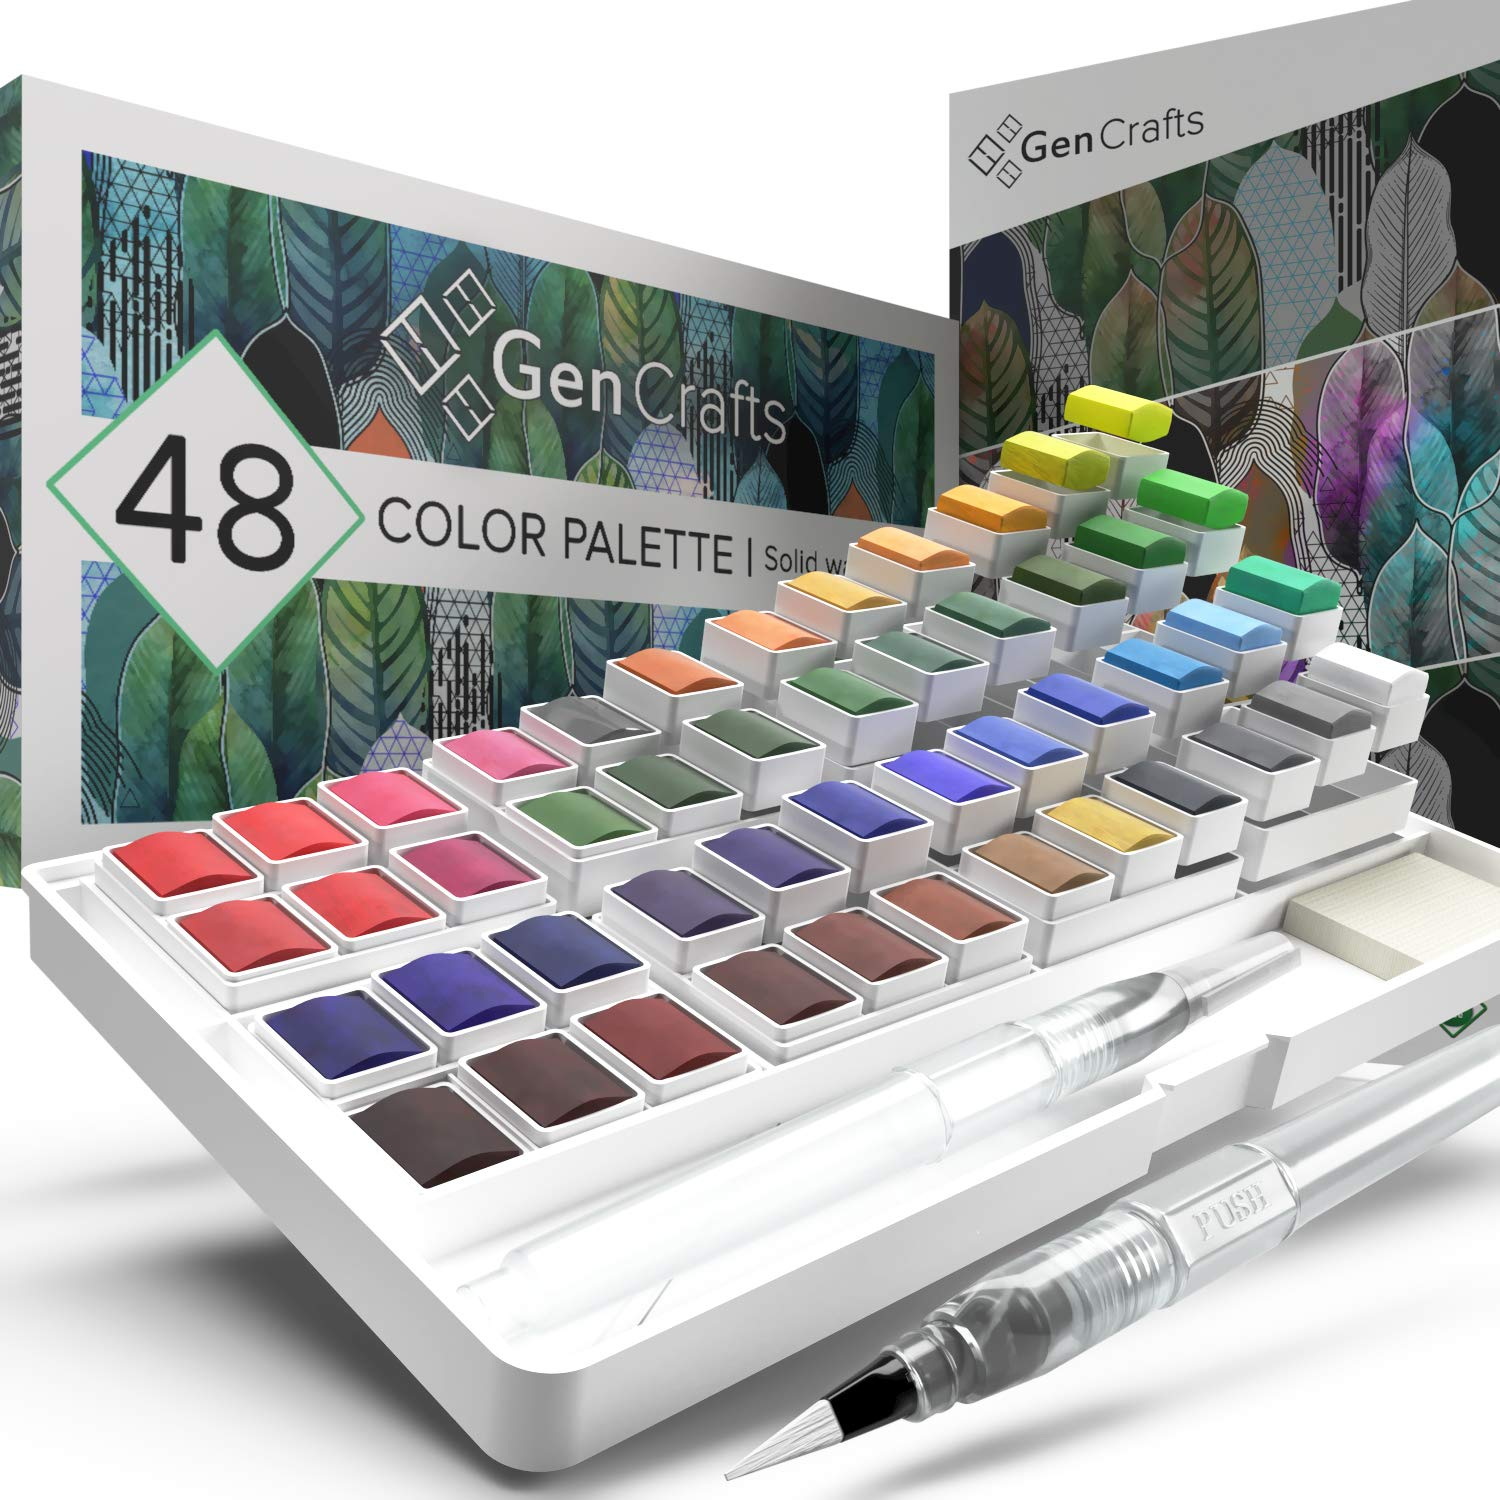 Watercolor Palette with Bonus Paper Pad by GenCrafts - Includes 48 Premium Colors - 2 Refillable Water Blending Brush Pens - No Mess Storage Case - 15 Sheets of Water Color Paper - Portable Painting